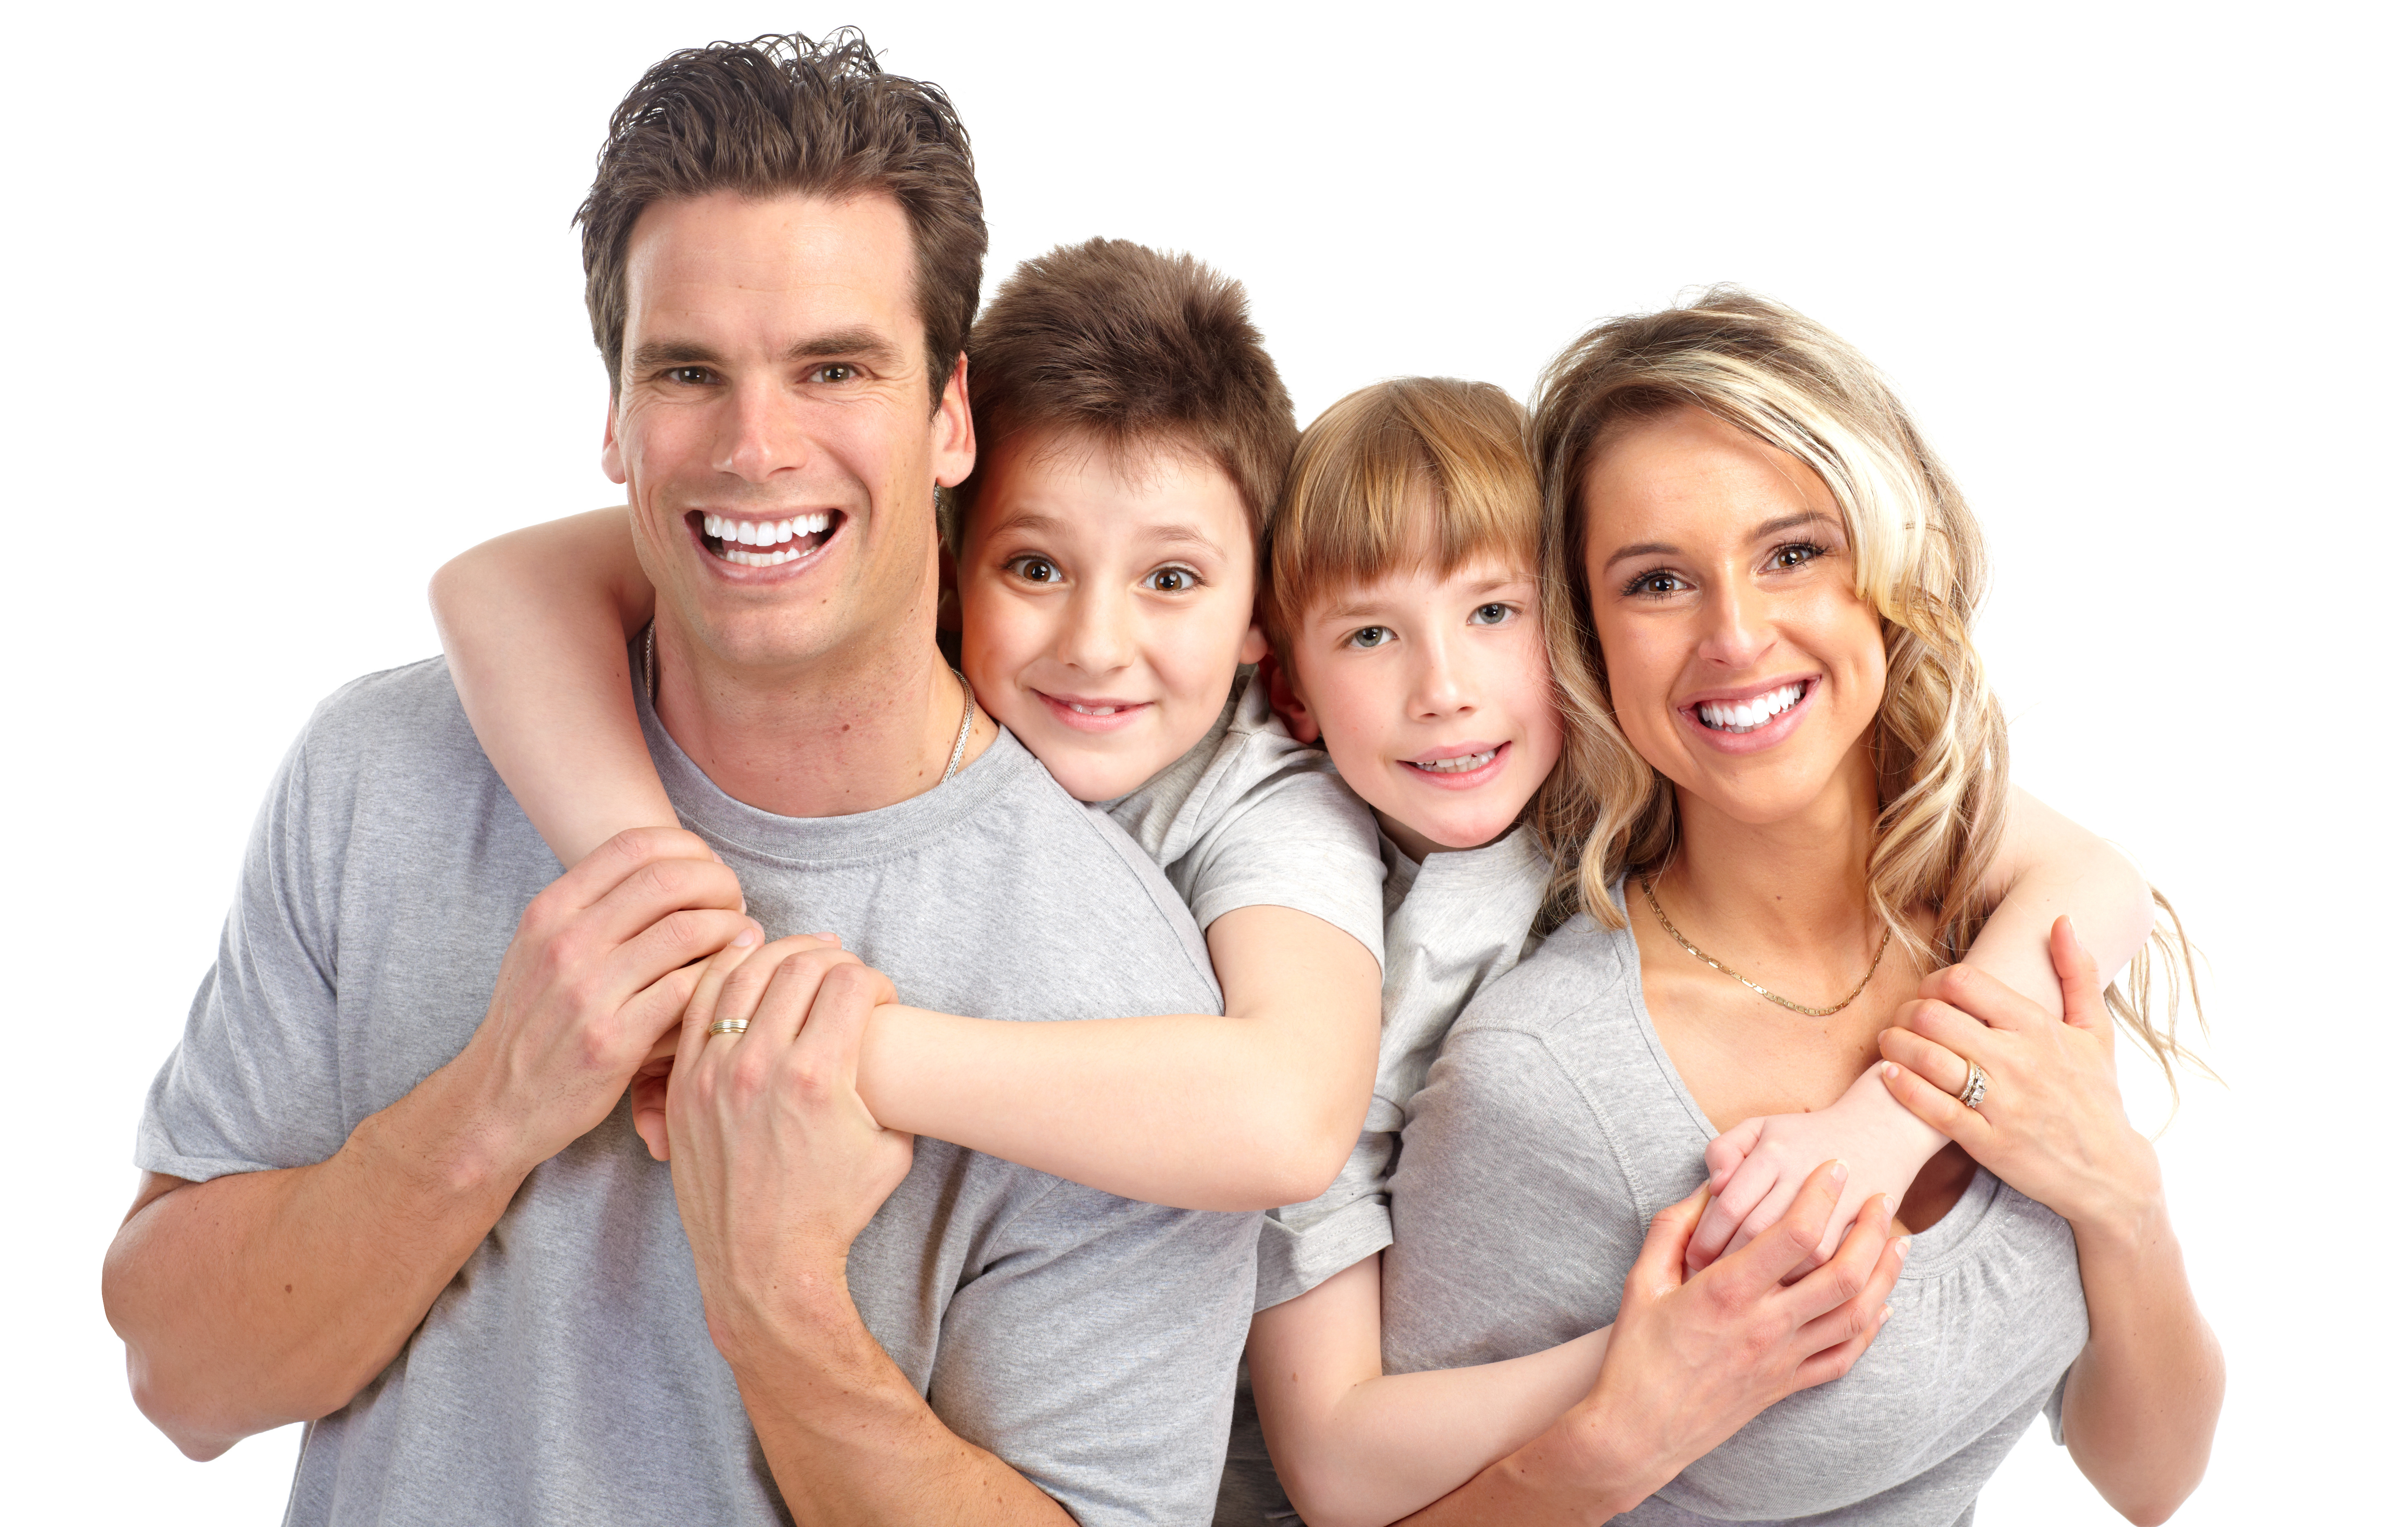 PNG Family Picture - 153436